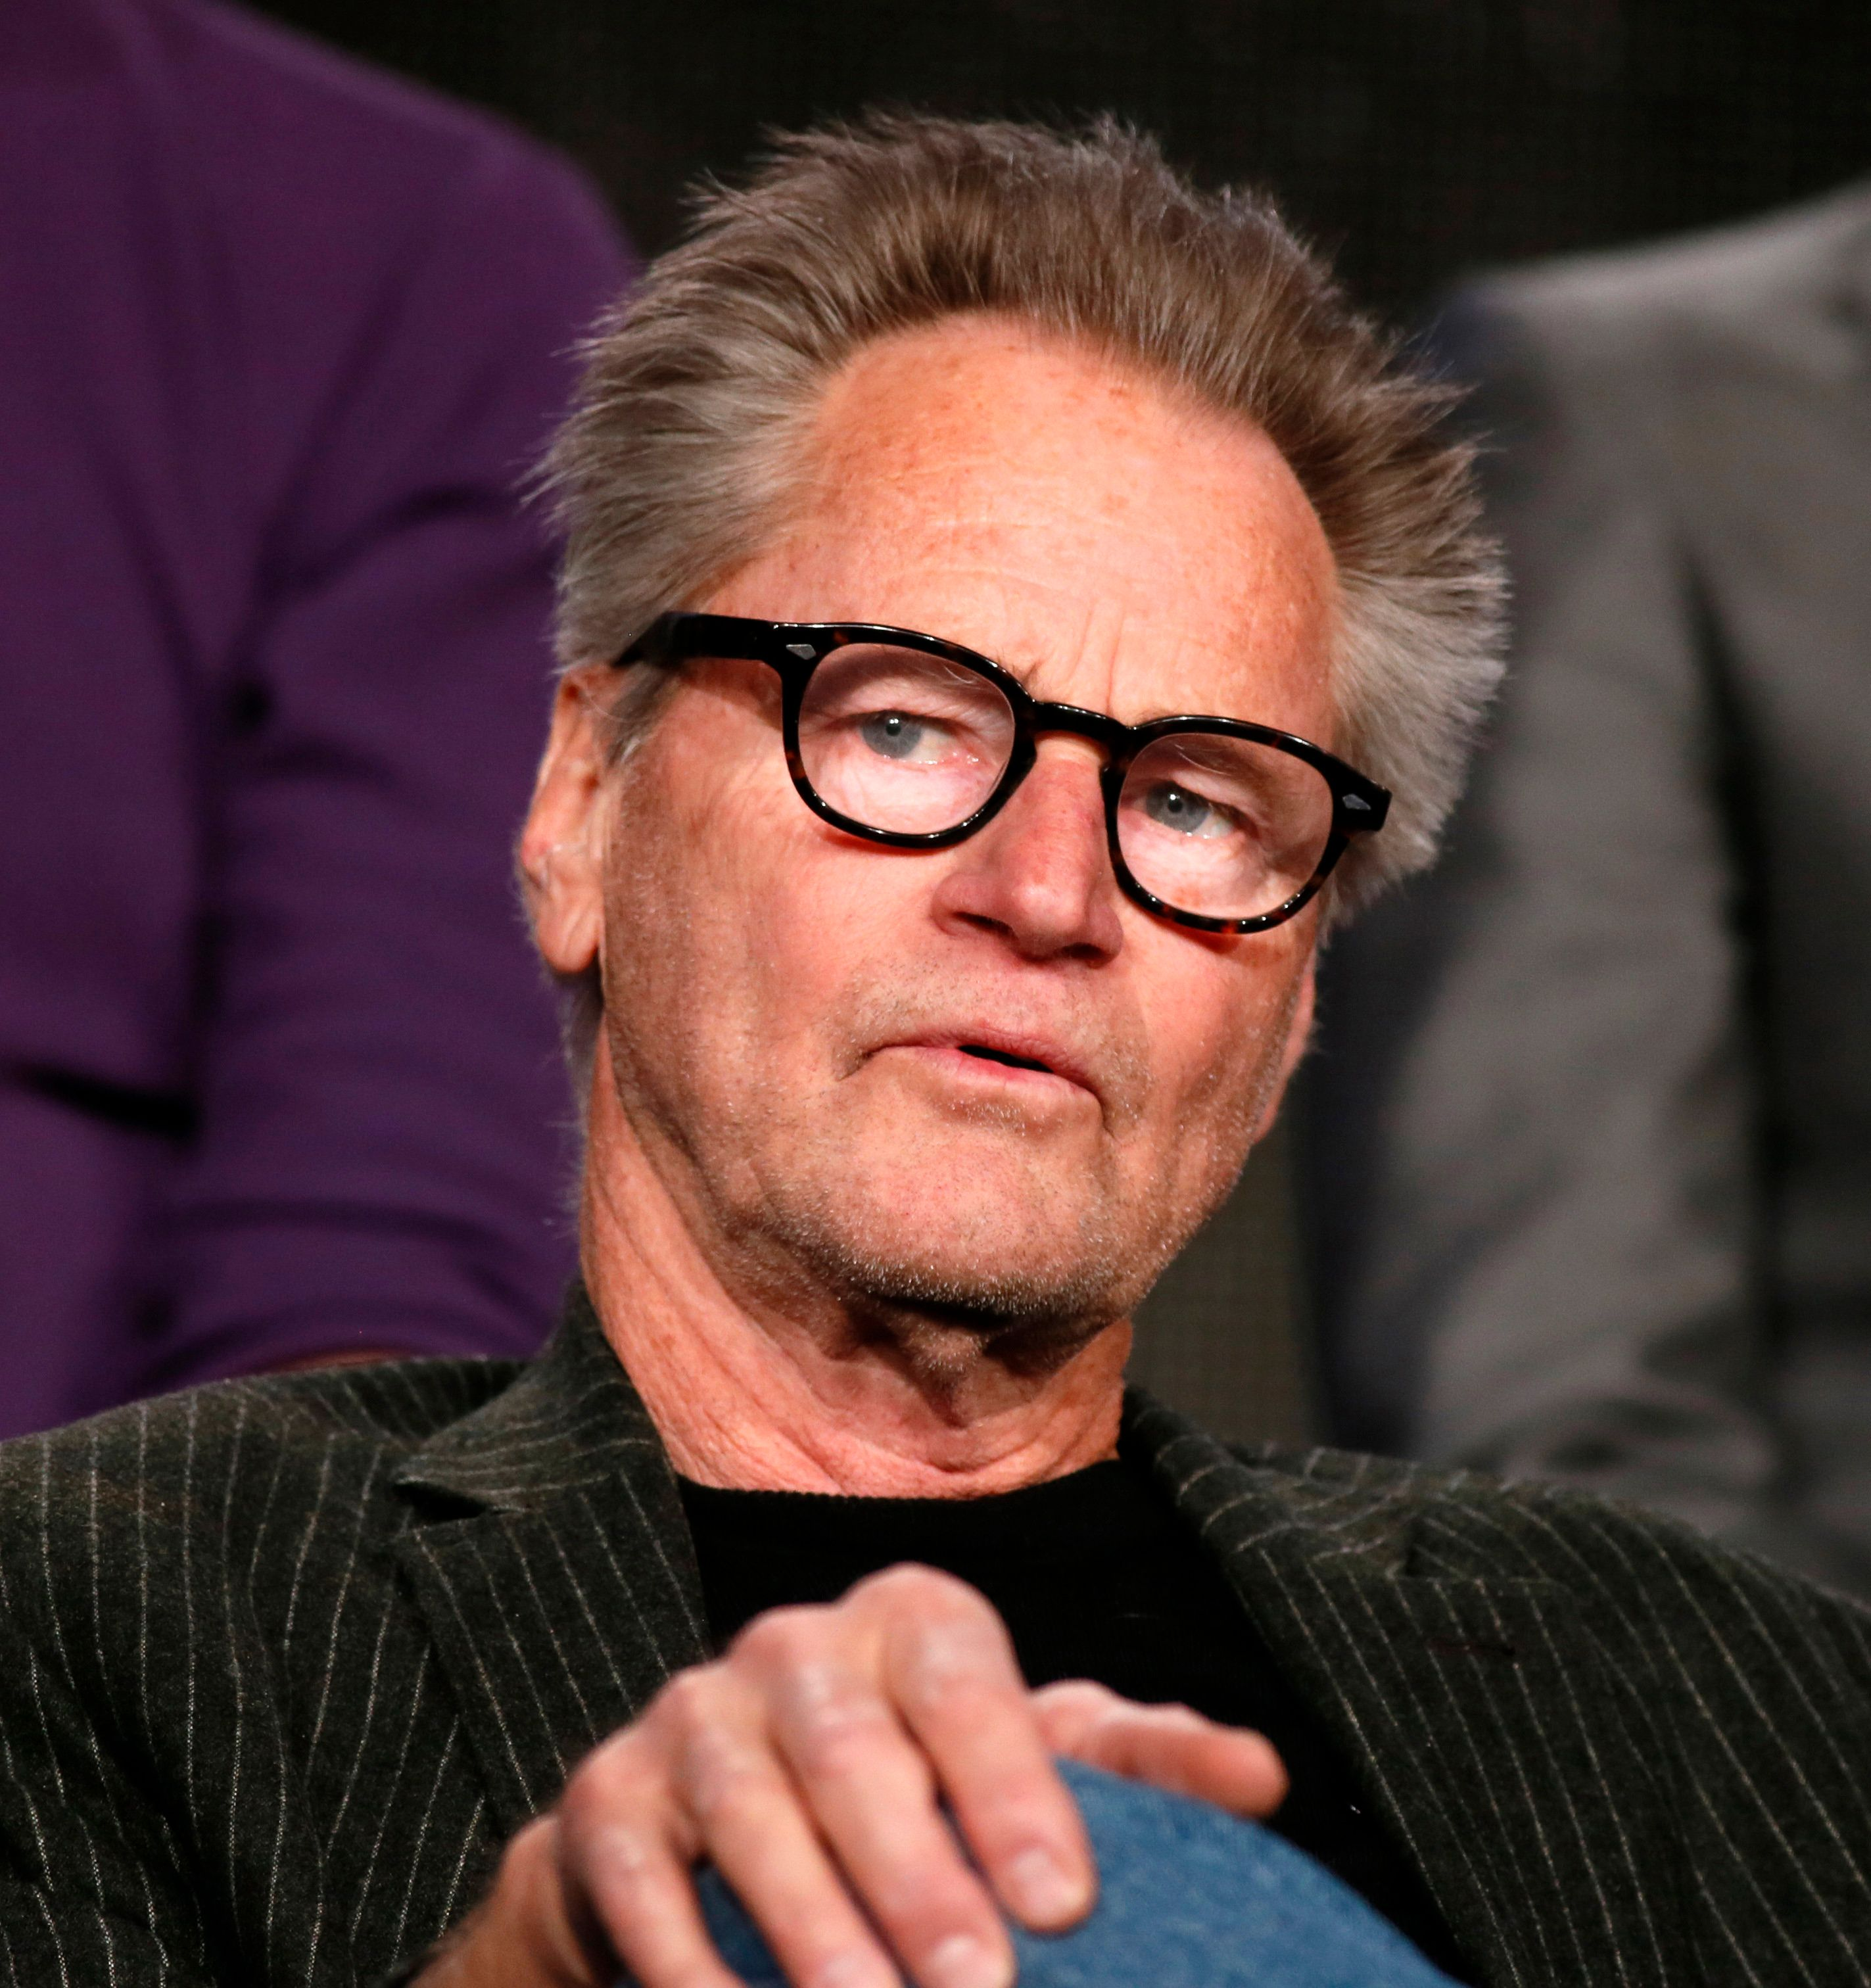 """Actor Sam Shepard talks about Discovery Channel's """"Klondike"""" during the Winter 2014 TCA presentations in Pasadena, California, January 9, 2014. REUTERS/Lucy Nicholson (UNITED STATES - Tags: ENTERTAINMENT)"""